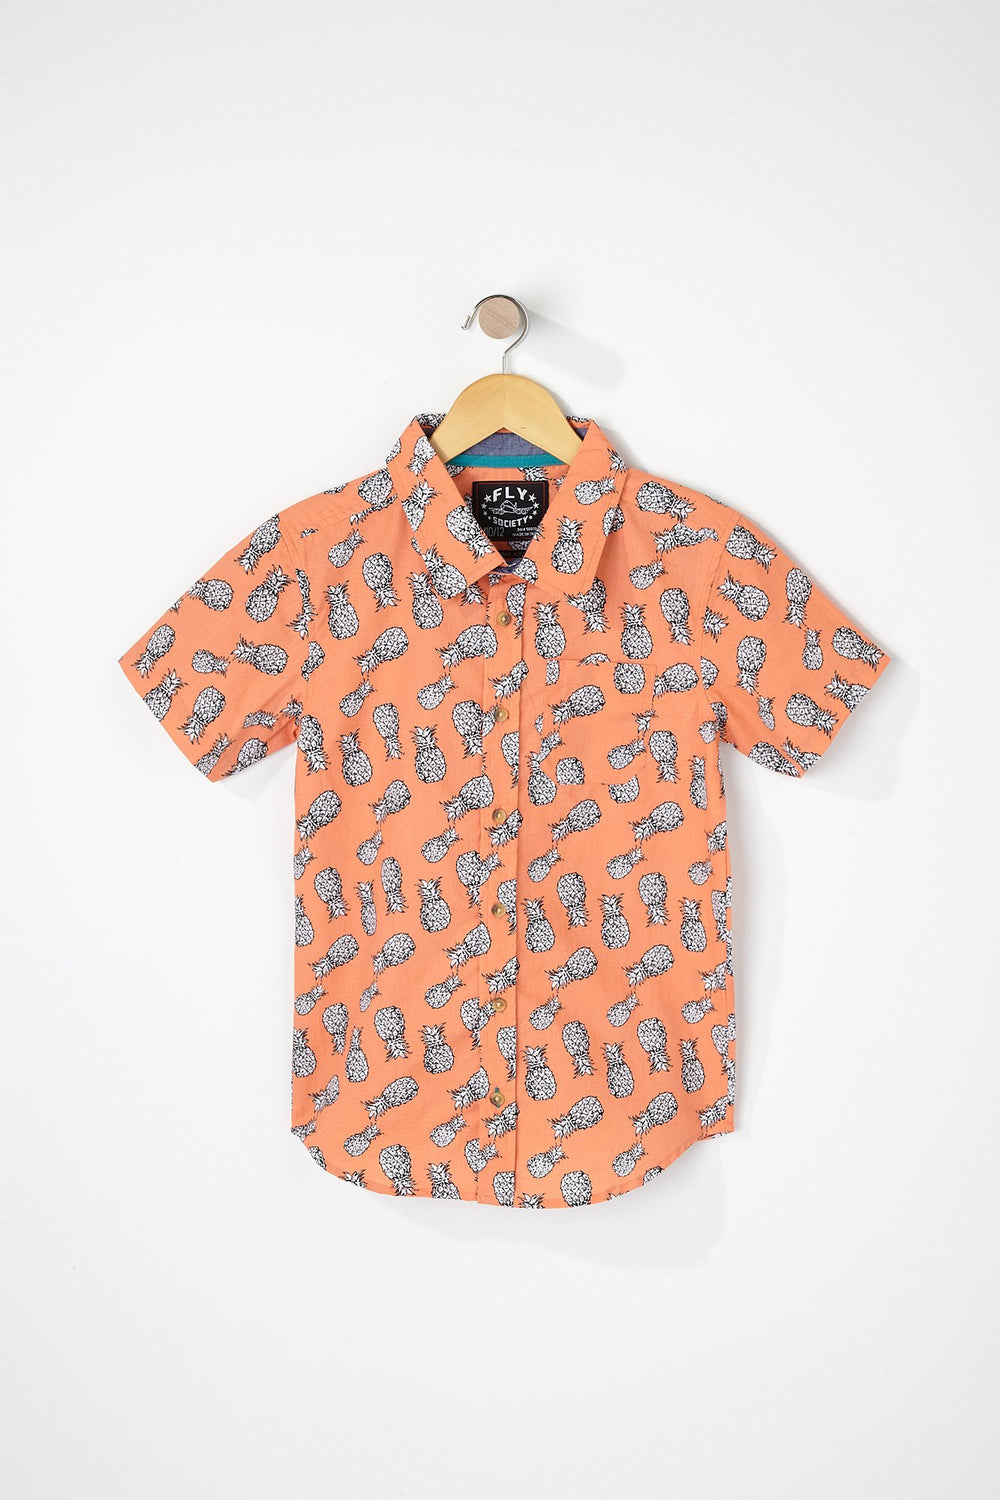 West49 Boys Pineapple Button-Up Shirt Orange